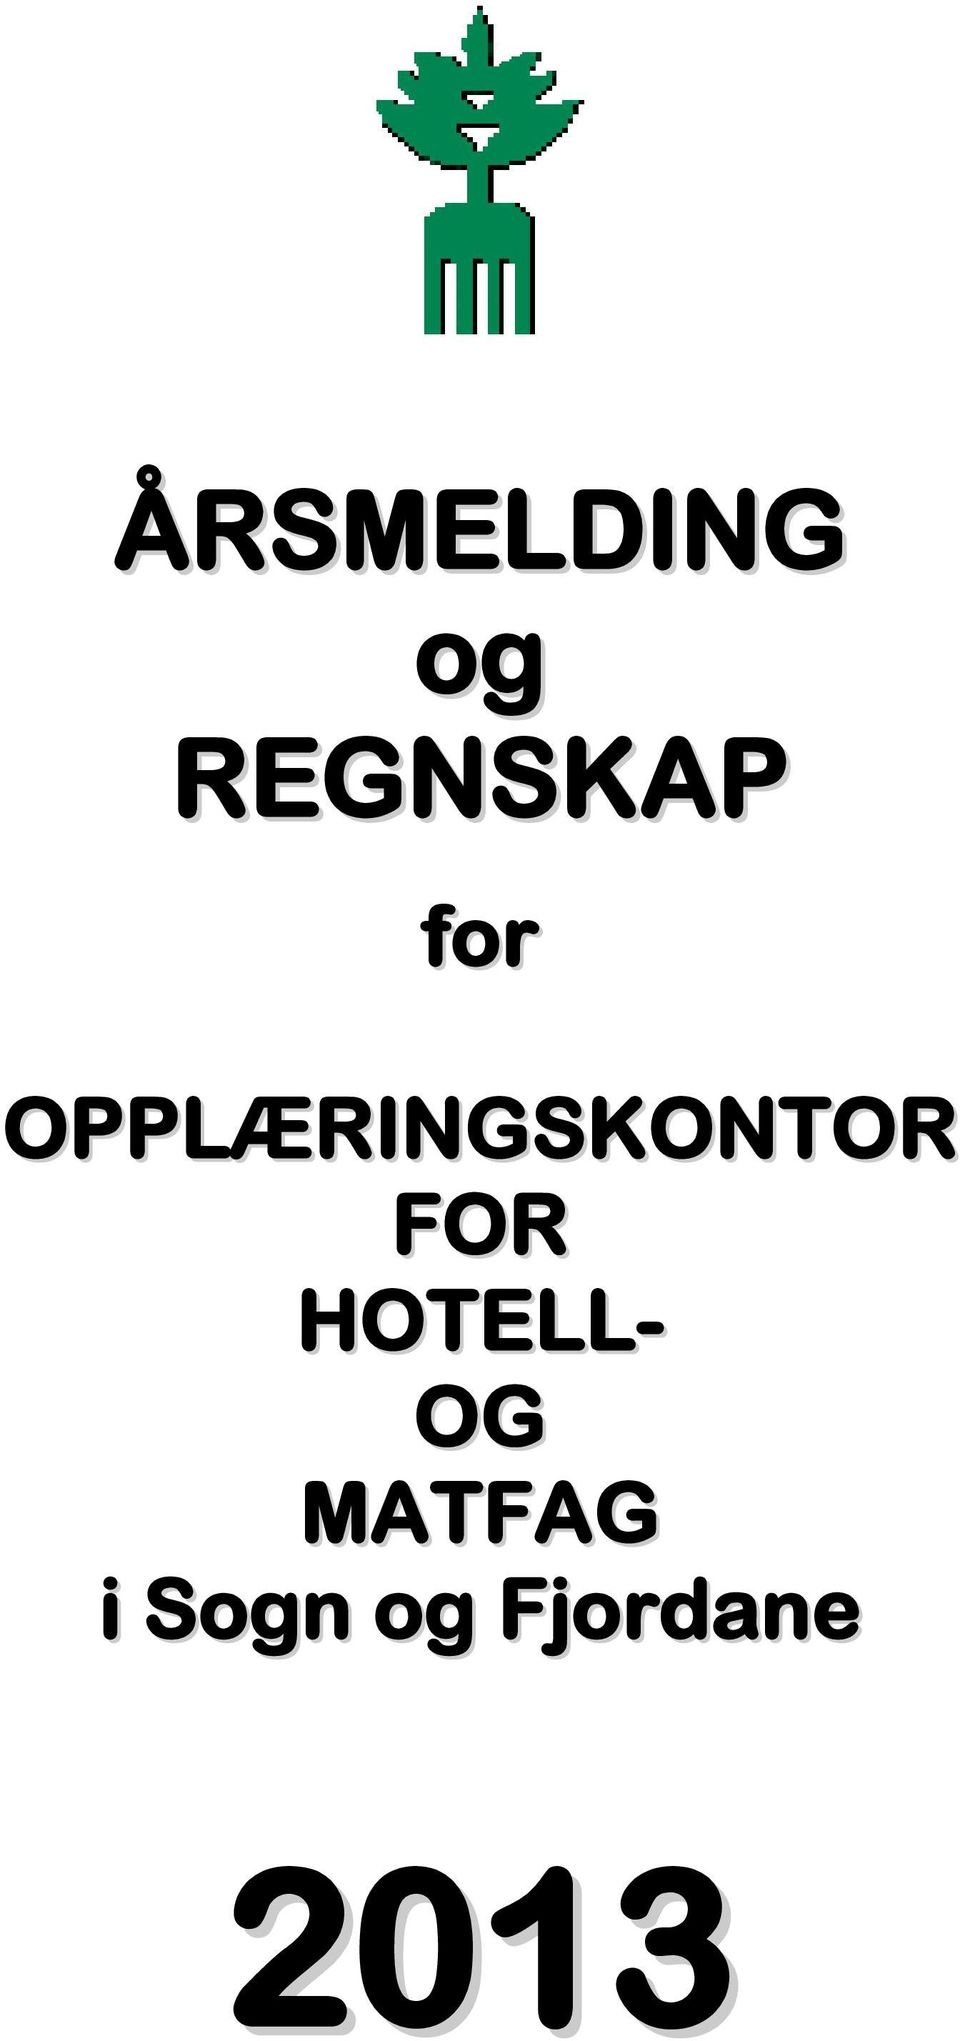 FOR HOTELL- OG MATFAG